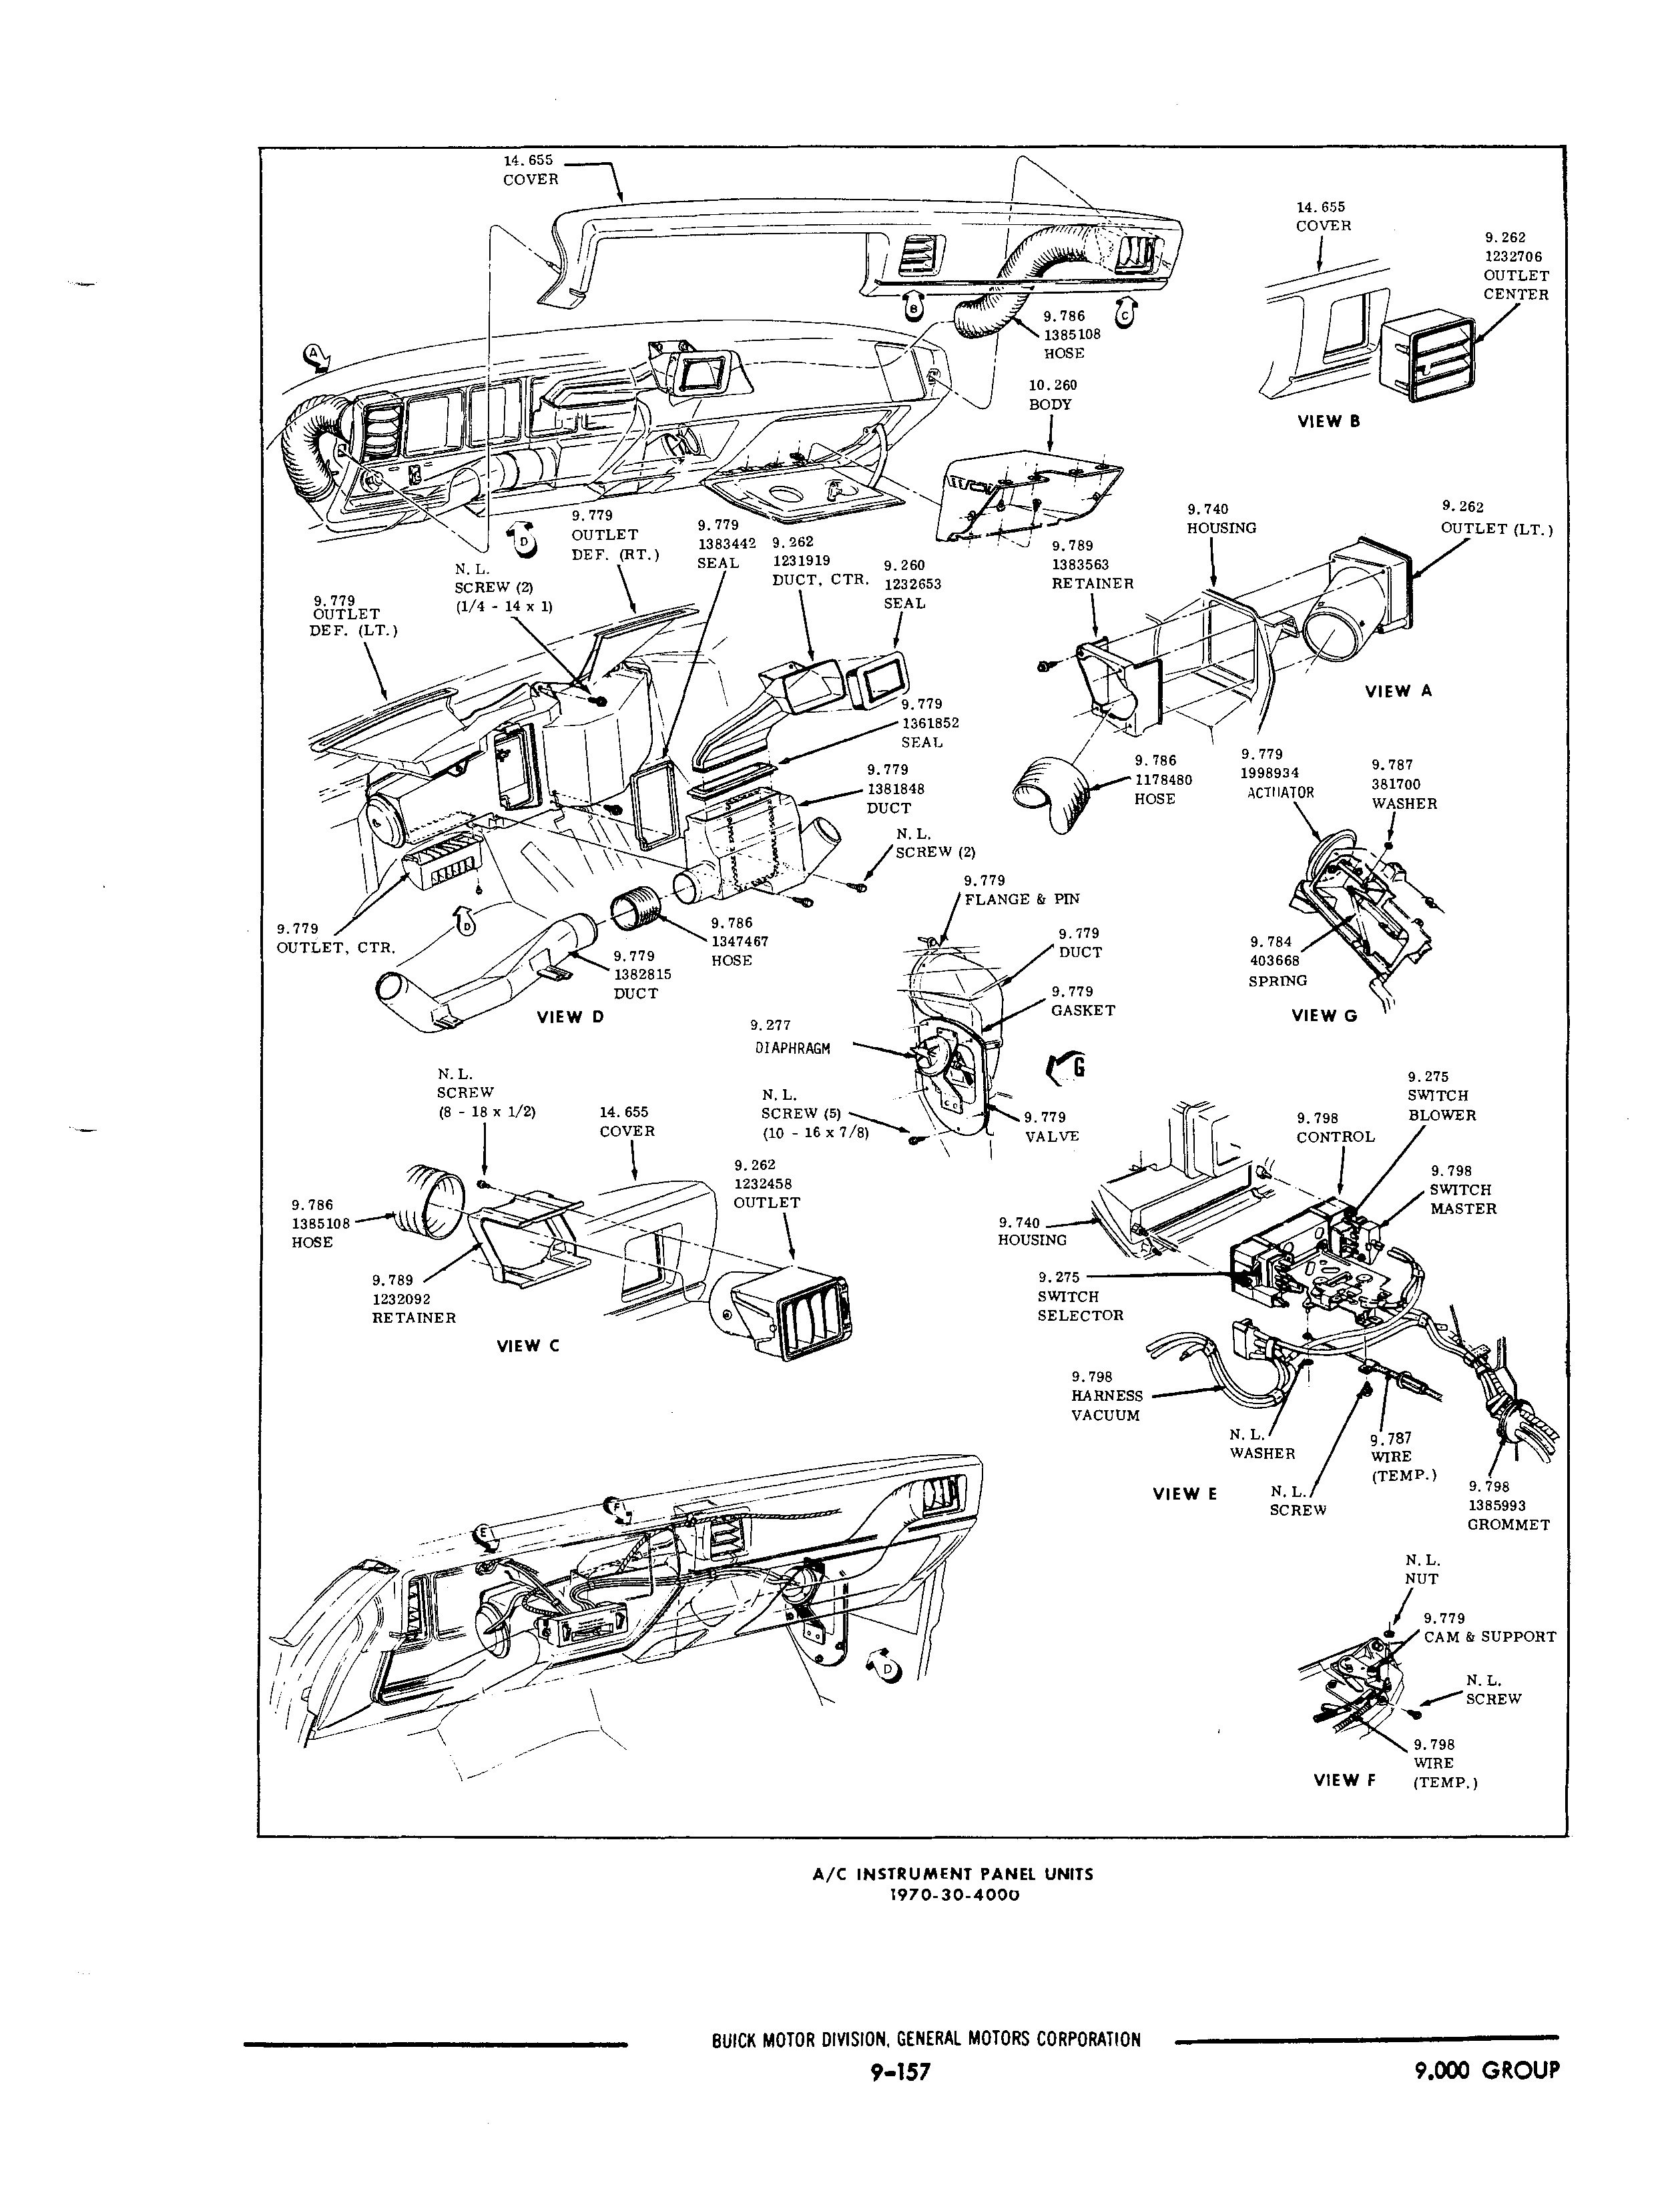 1972 chevy truck wiring diagram 2005 jeep grand cherokee limited 1952 ford repair and engine